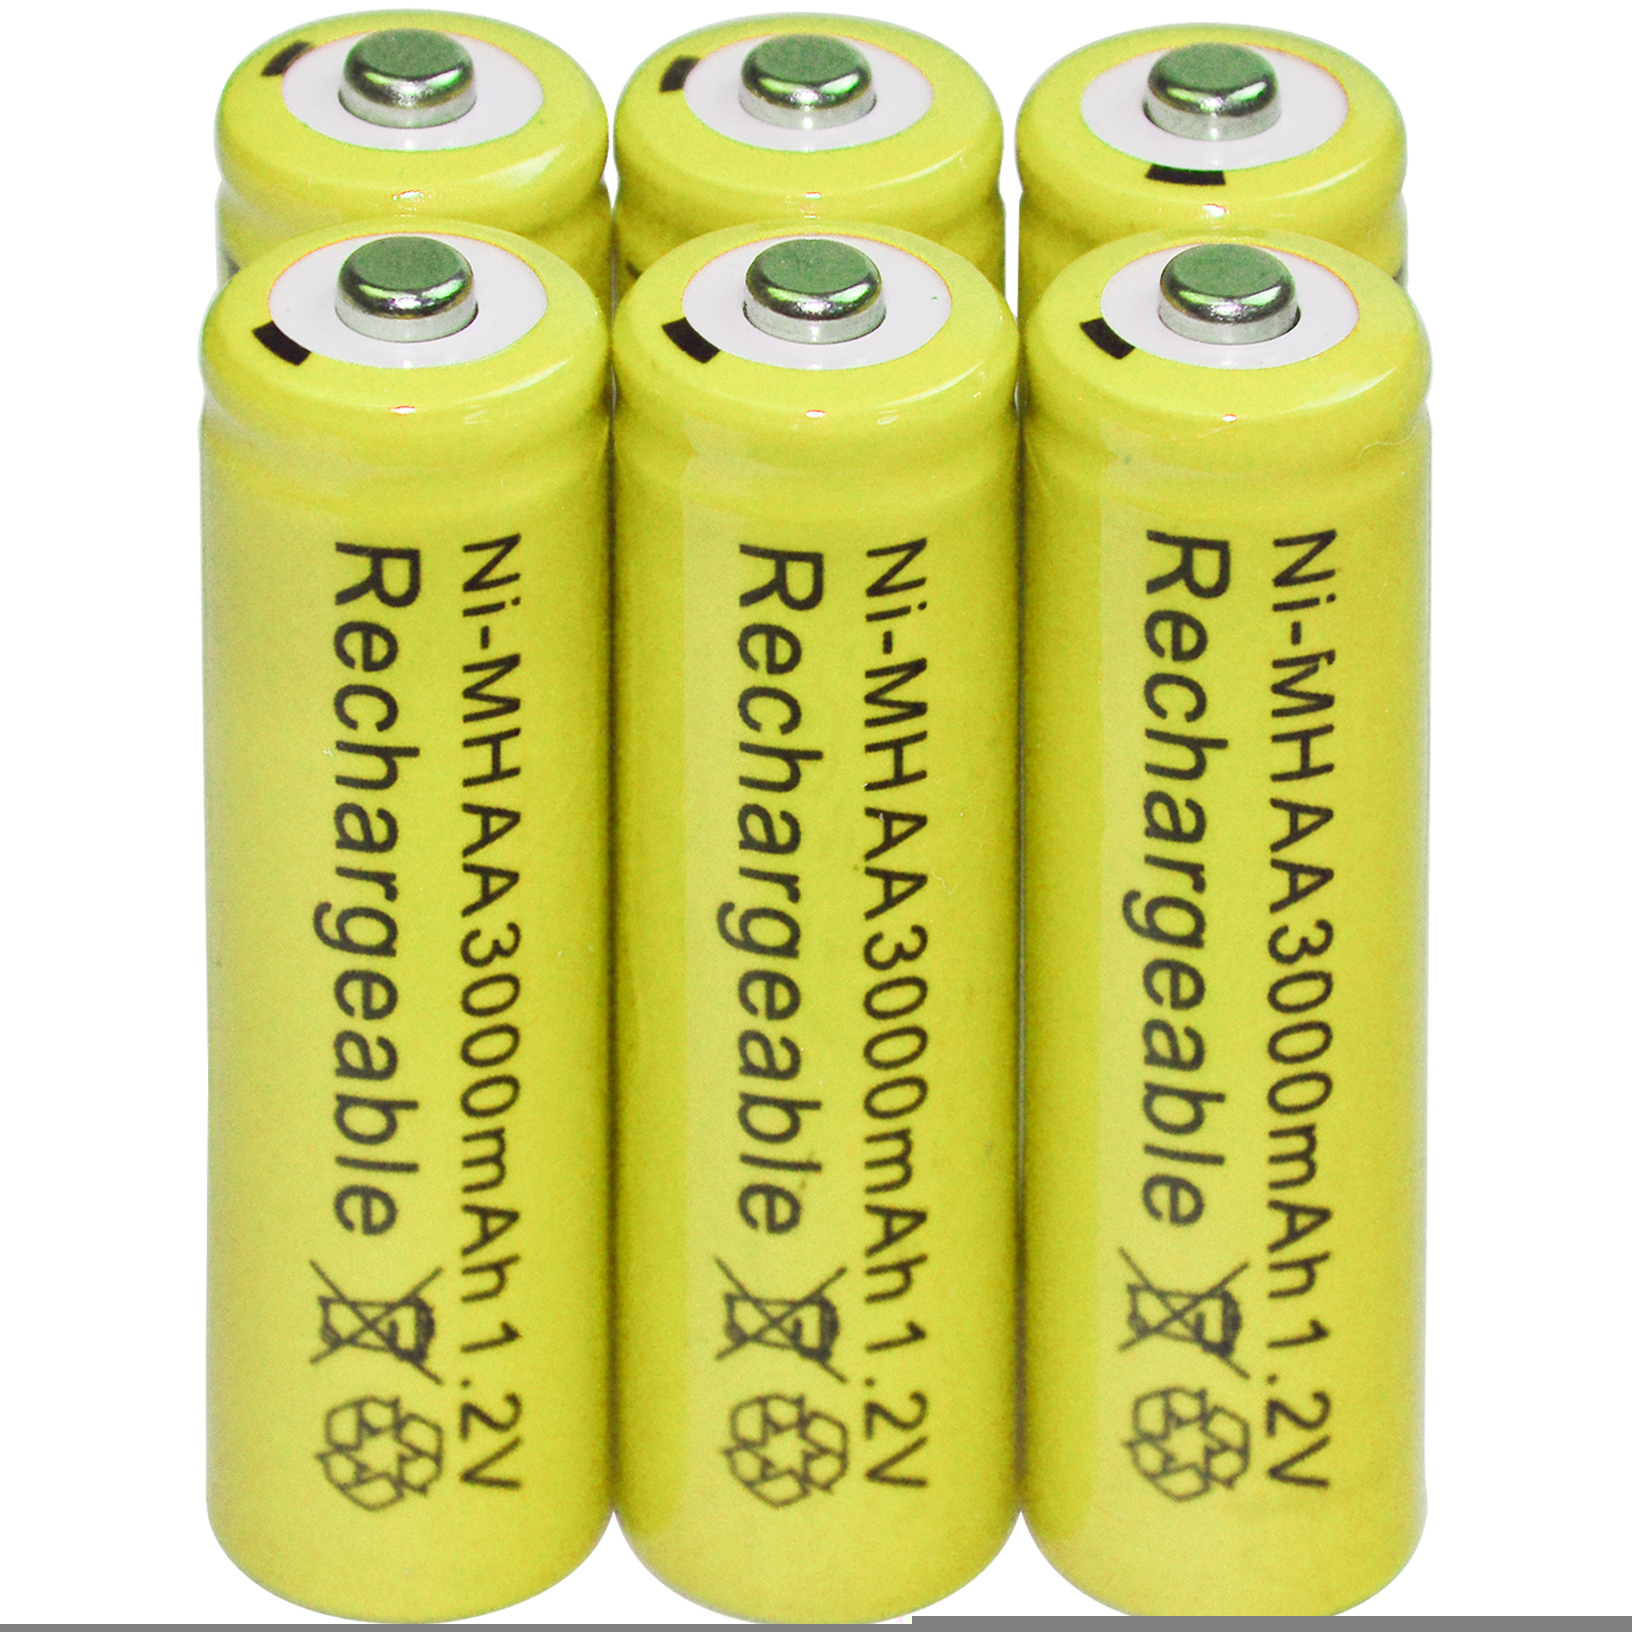 6x AA 2A 3000mAh 1.2V Rechargeable batteries Yellow Bulk Nickel Hydride NI-MH for toys lights стоимость